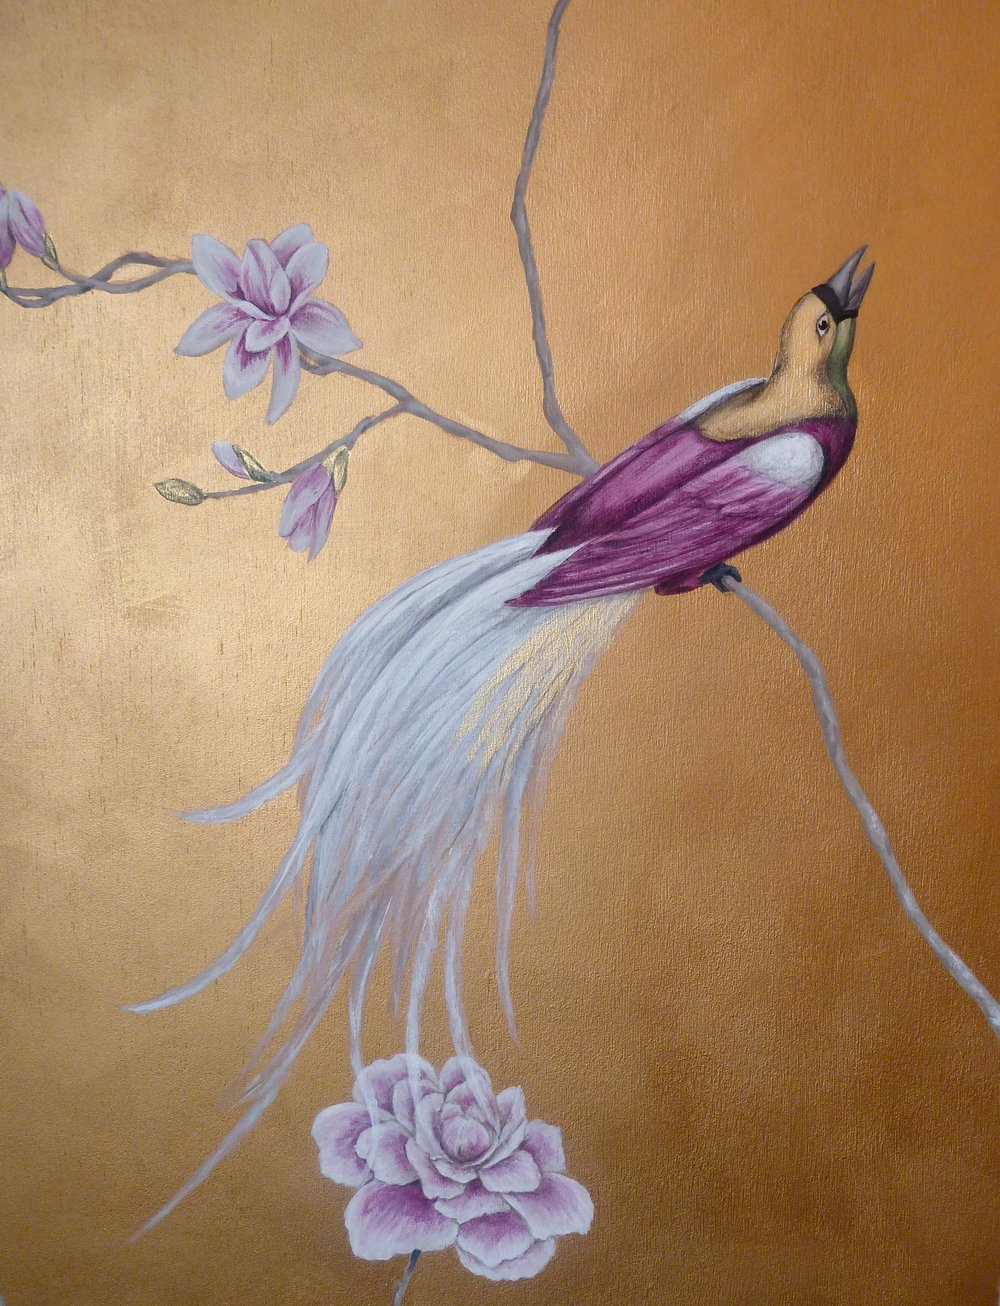 Magnolia chinoiserie wall mural, bird detail